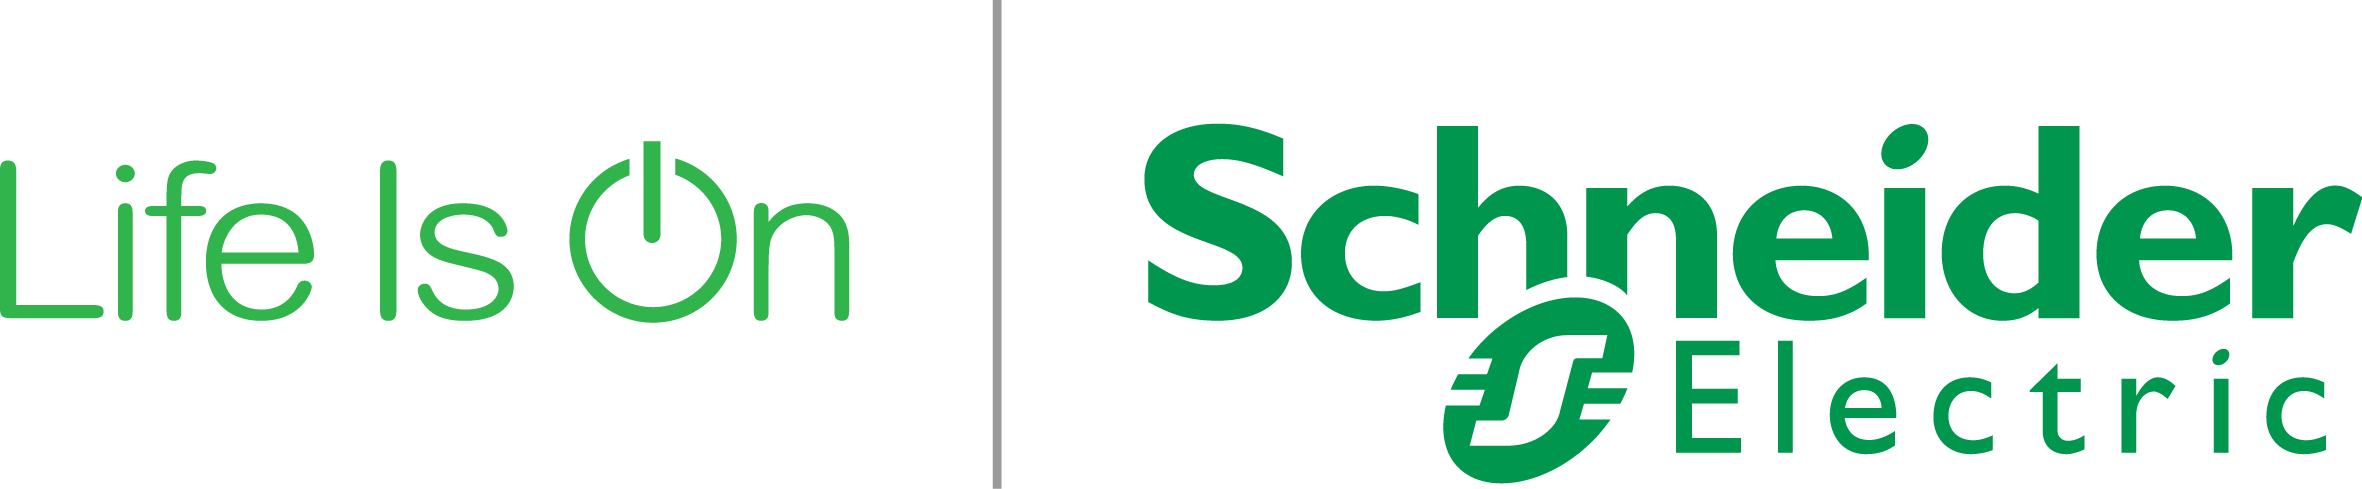 Schneider electric   life is on  logo